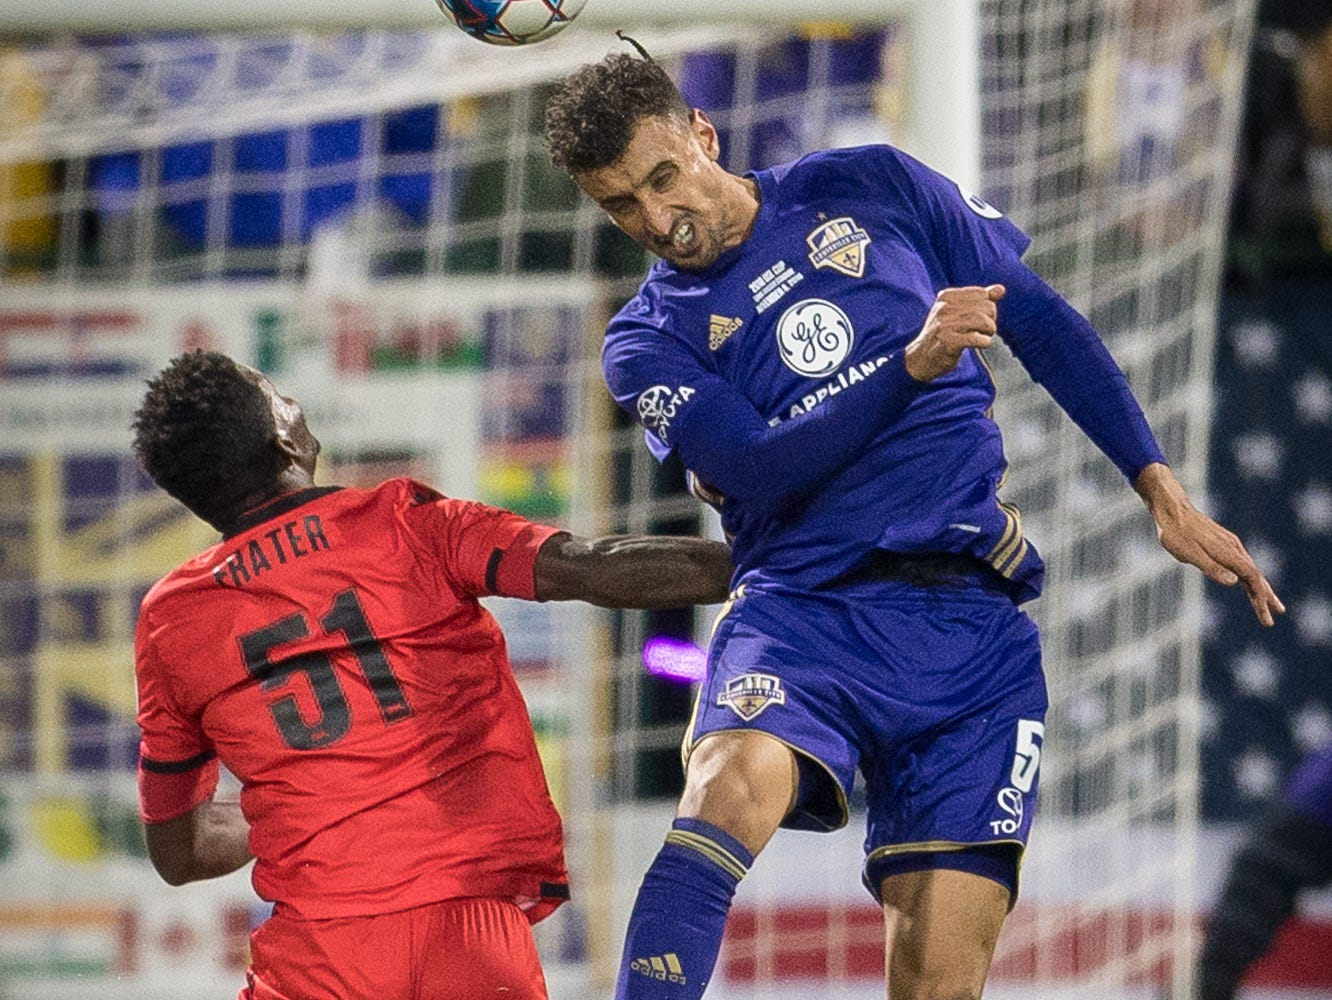 Louisville City FC defender Paco Craig (5) collides with Phoenix Rising FC forward Kevaughn Frater (51) during the first half of the USL Cup final played at Lynn Stadium on the campus of the University of Louisville, Louisville, Ky., Thursday, Nov., 8, 2018.